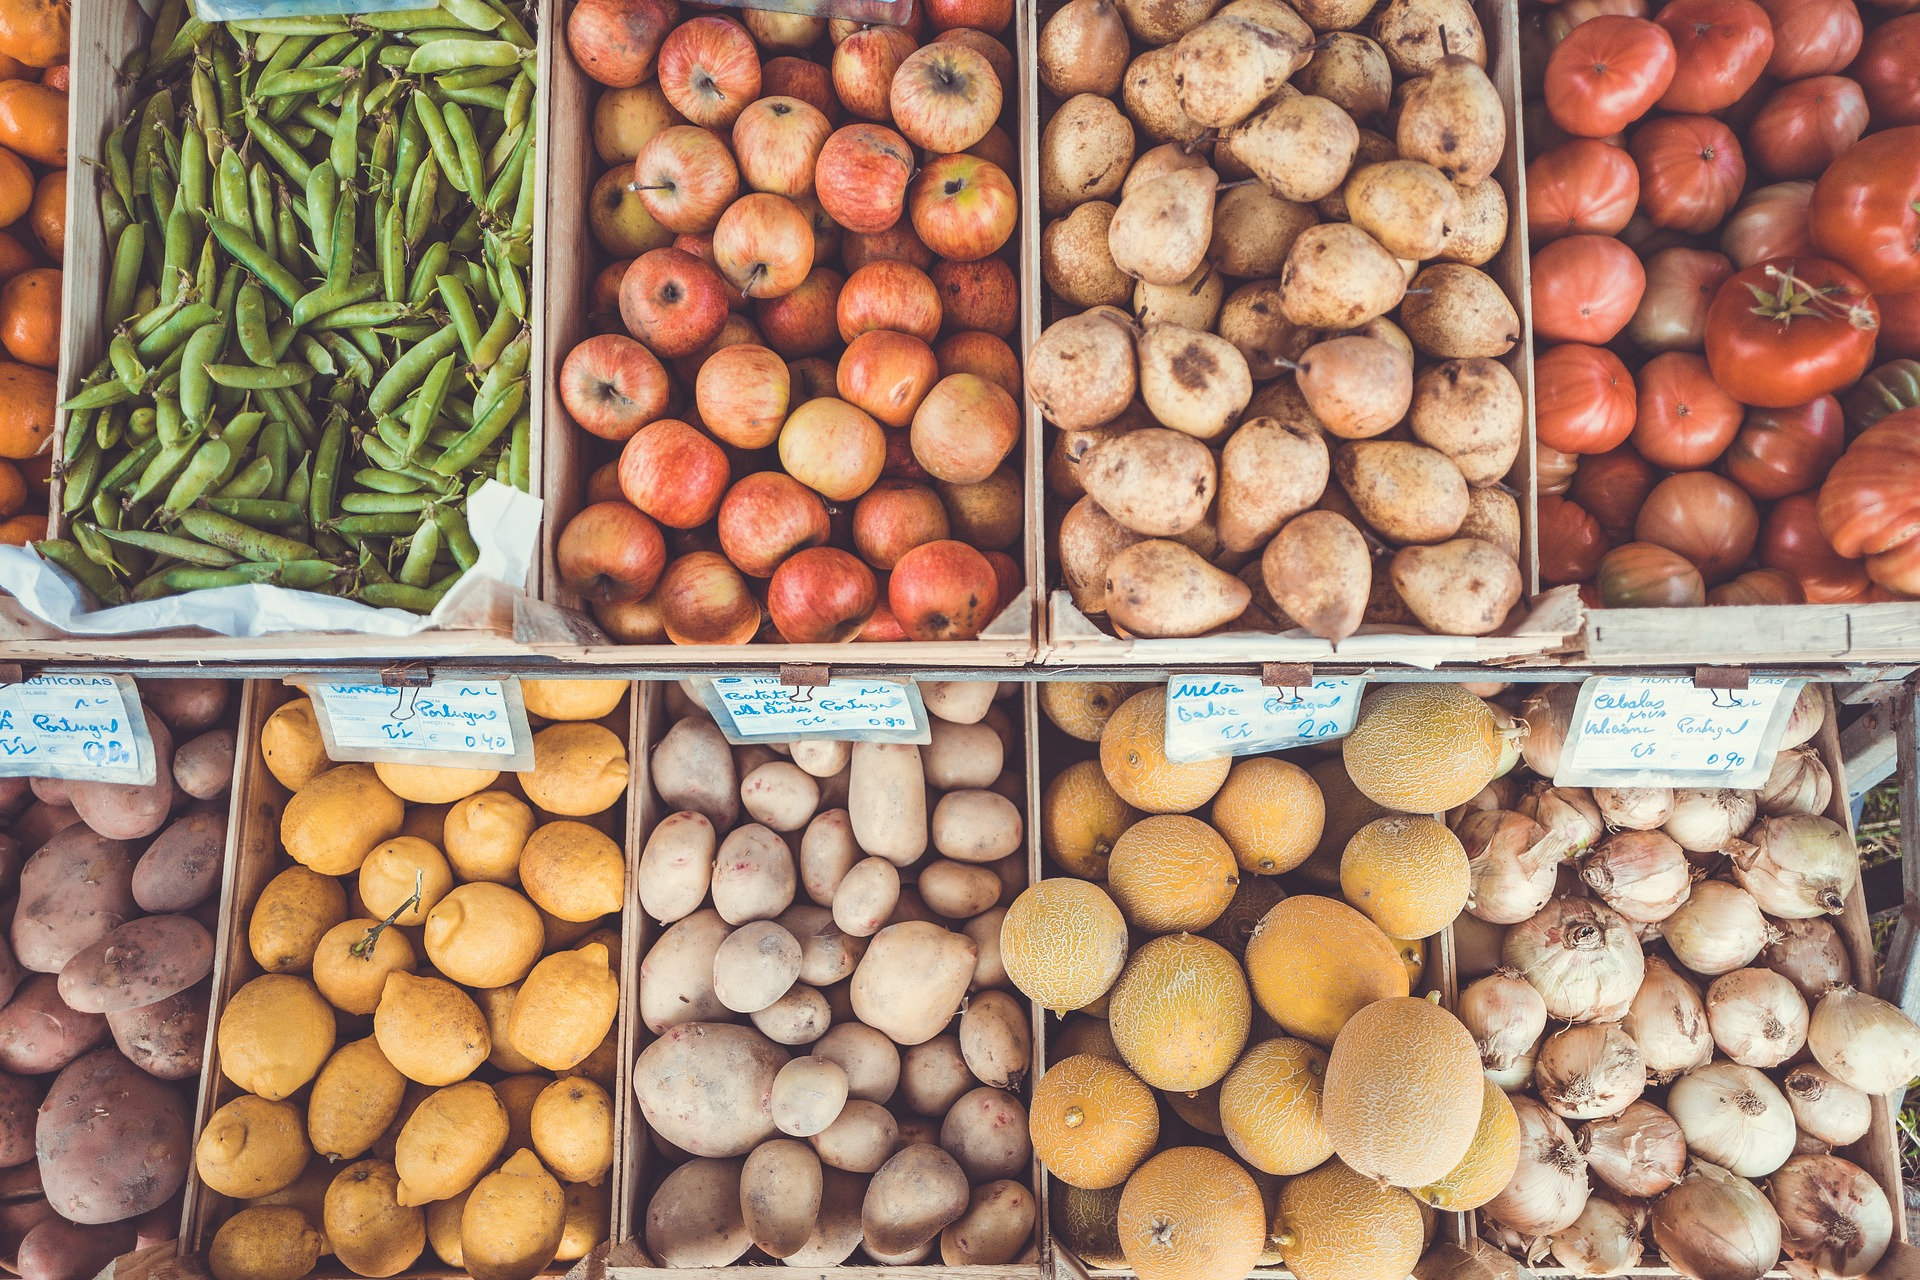 Eliminate one processed food from your grocery list every week | Pictured: Farmer's market.